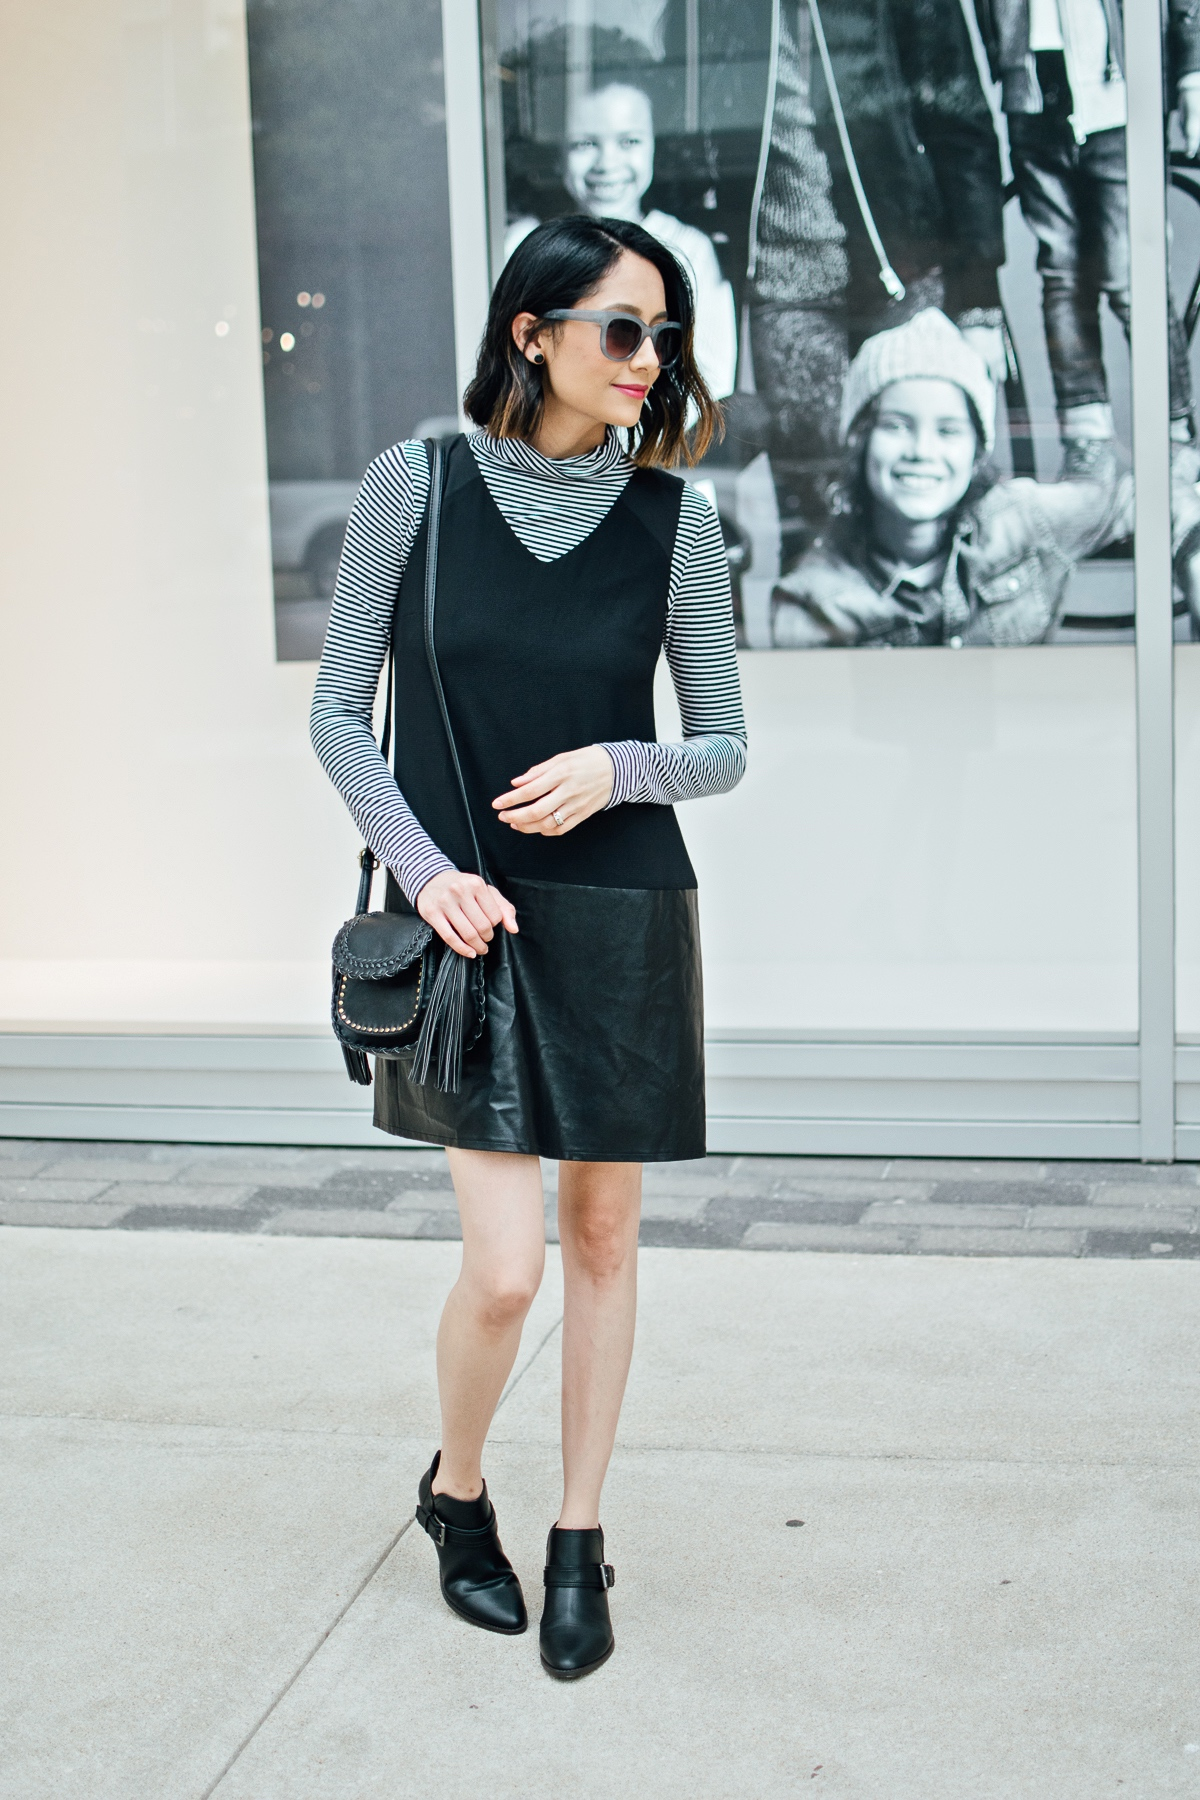 Style blogger Daily Craving in a layered fall outfit with a black dress and striped long sleeve top and ankle boots